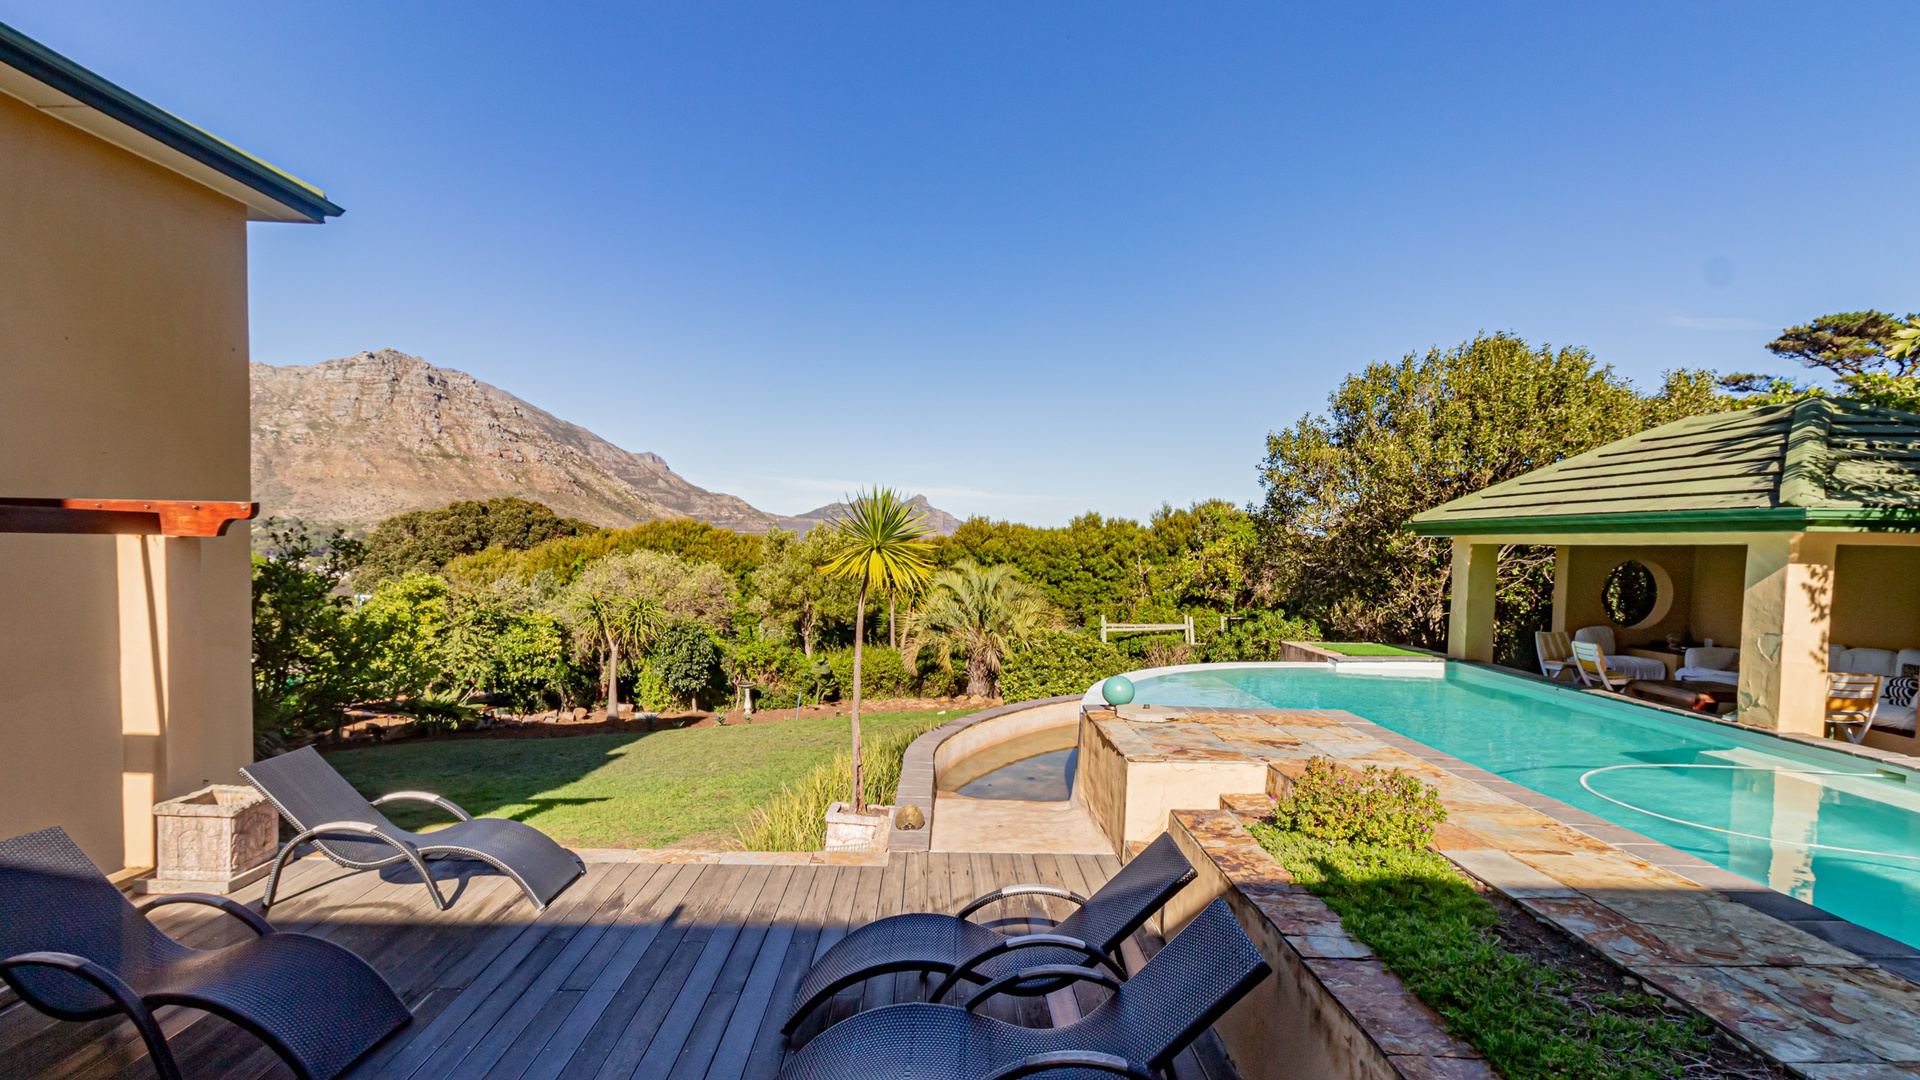 House in Hout Bay - Image-041.jpg